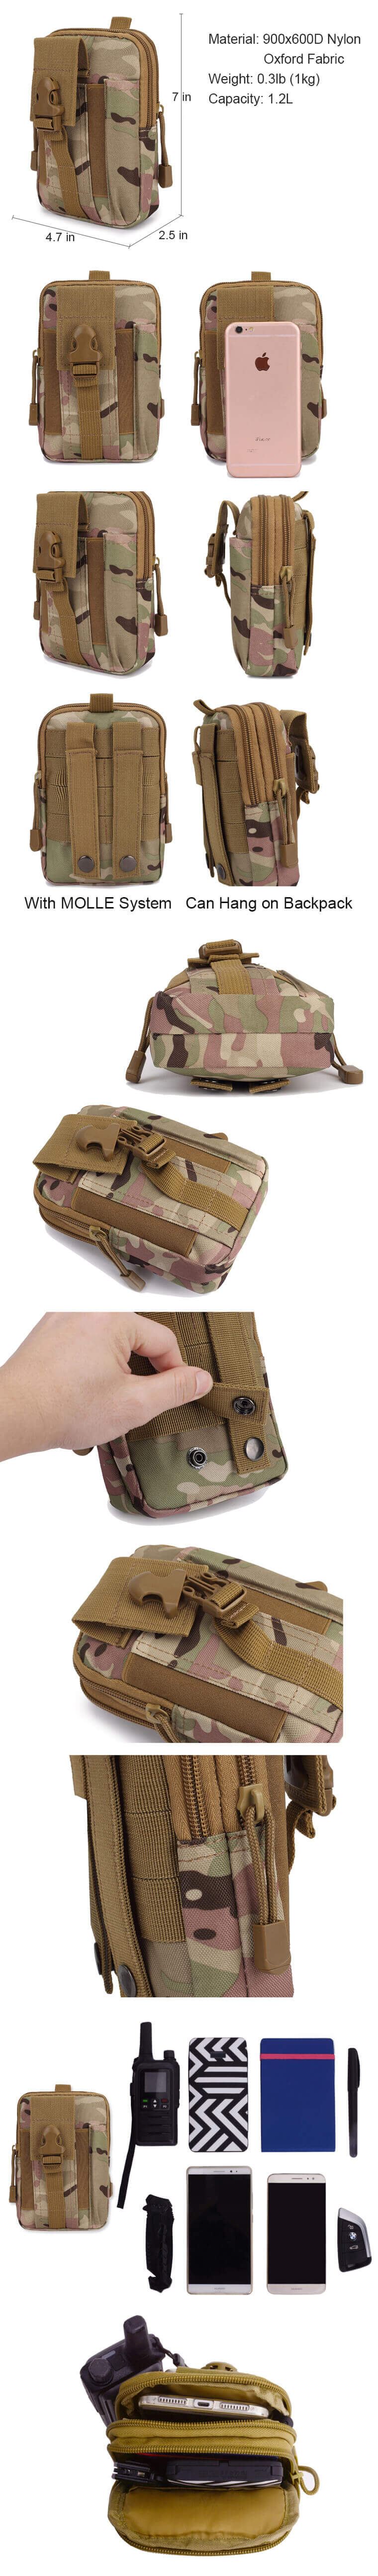 Tactical MOLLE Pouch Waist Bag Pack